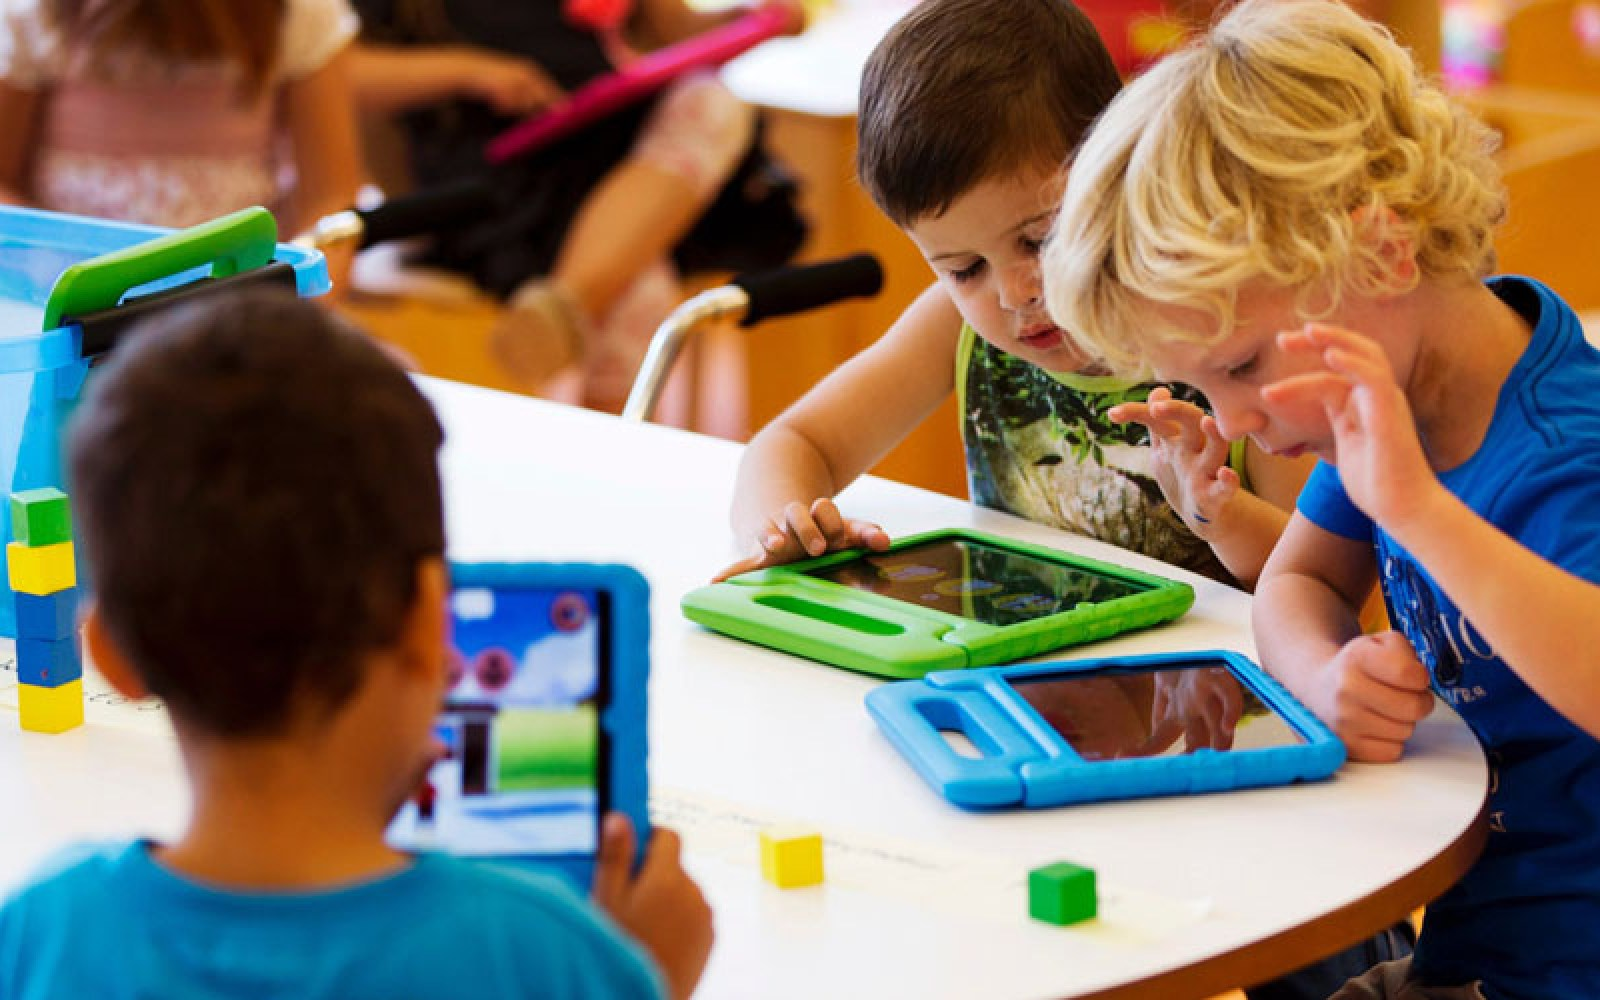 iPads as effective on kids as sedatives at calming them before surgery – medical study